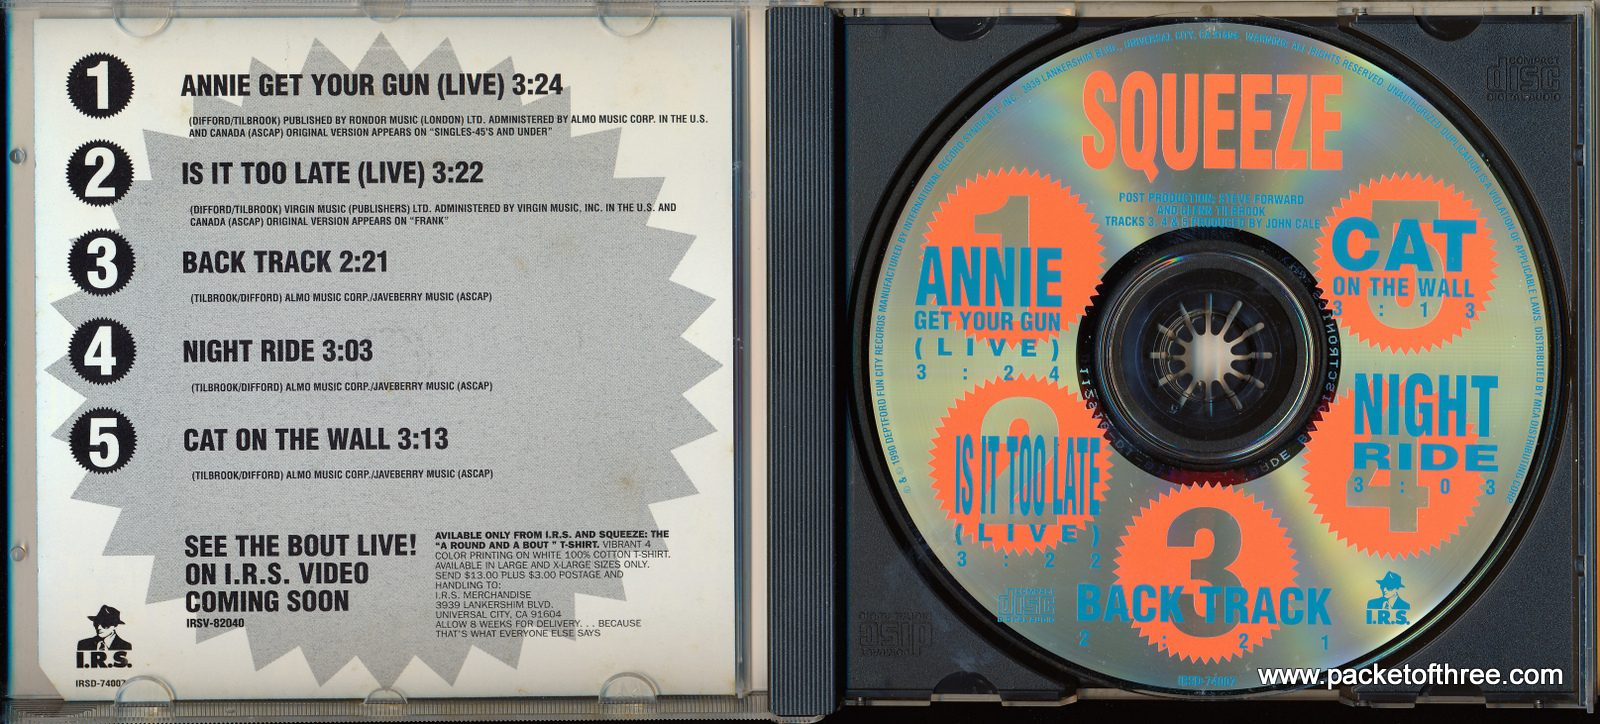 Annie Get Your Gun (Live) - USA - CD Single